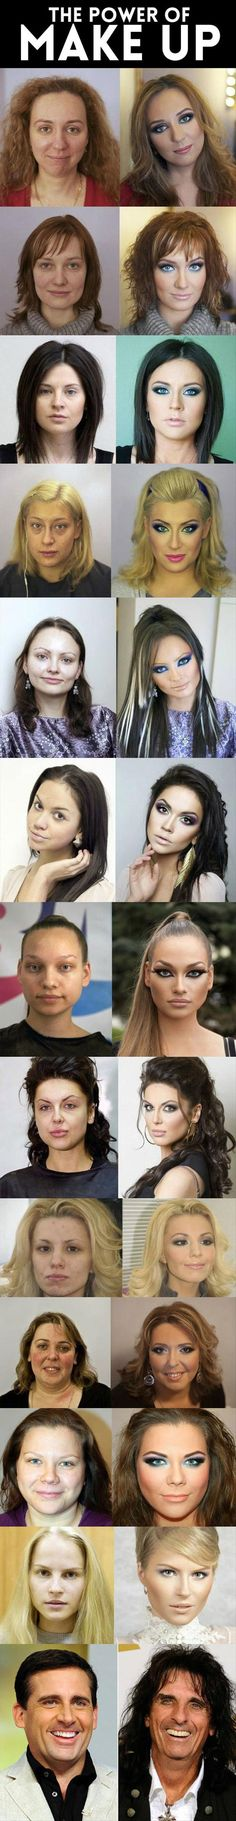 They should have done the makeup pics first then the natural pics and titled…